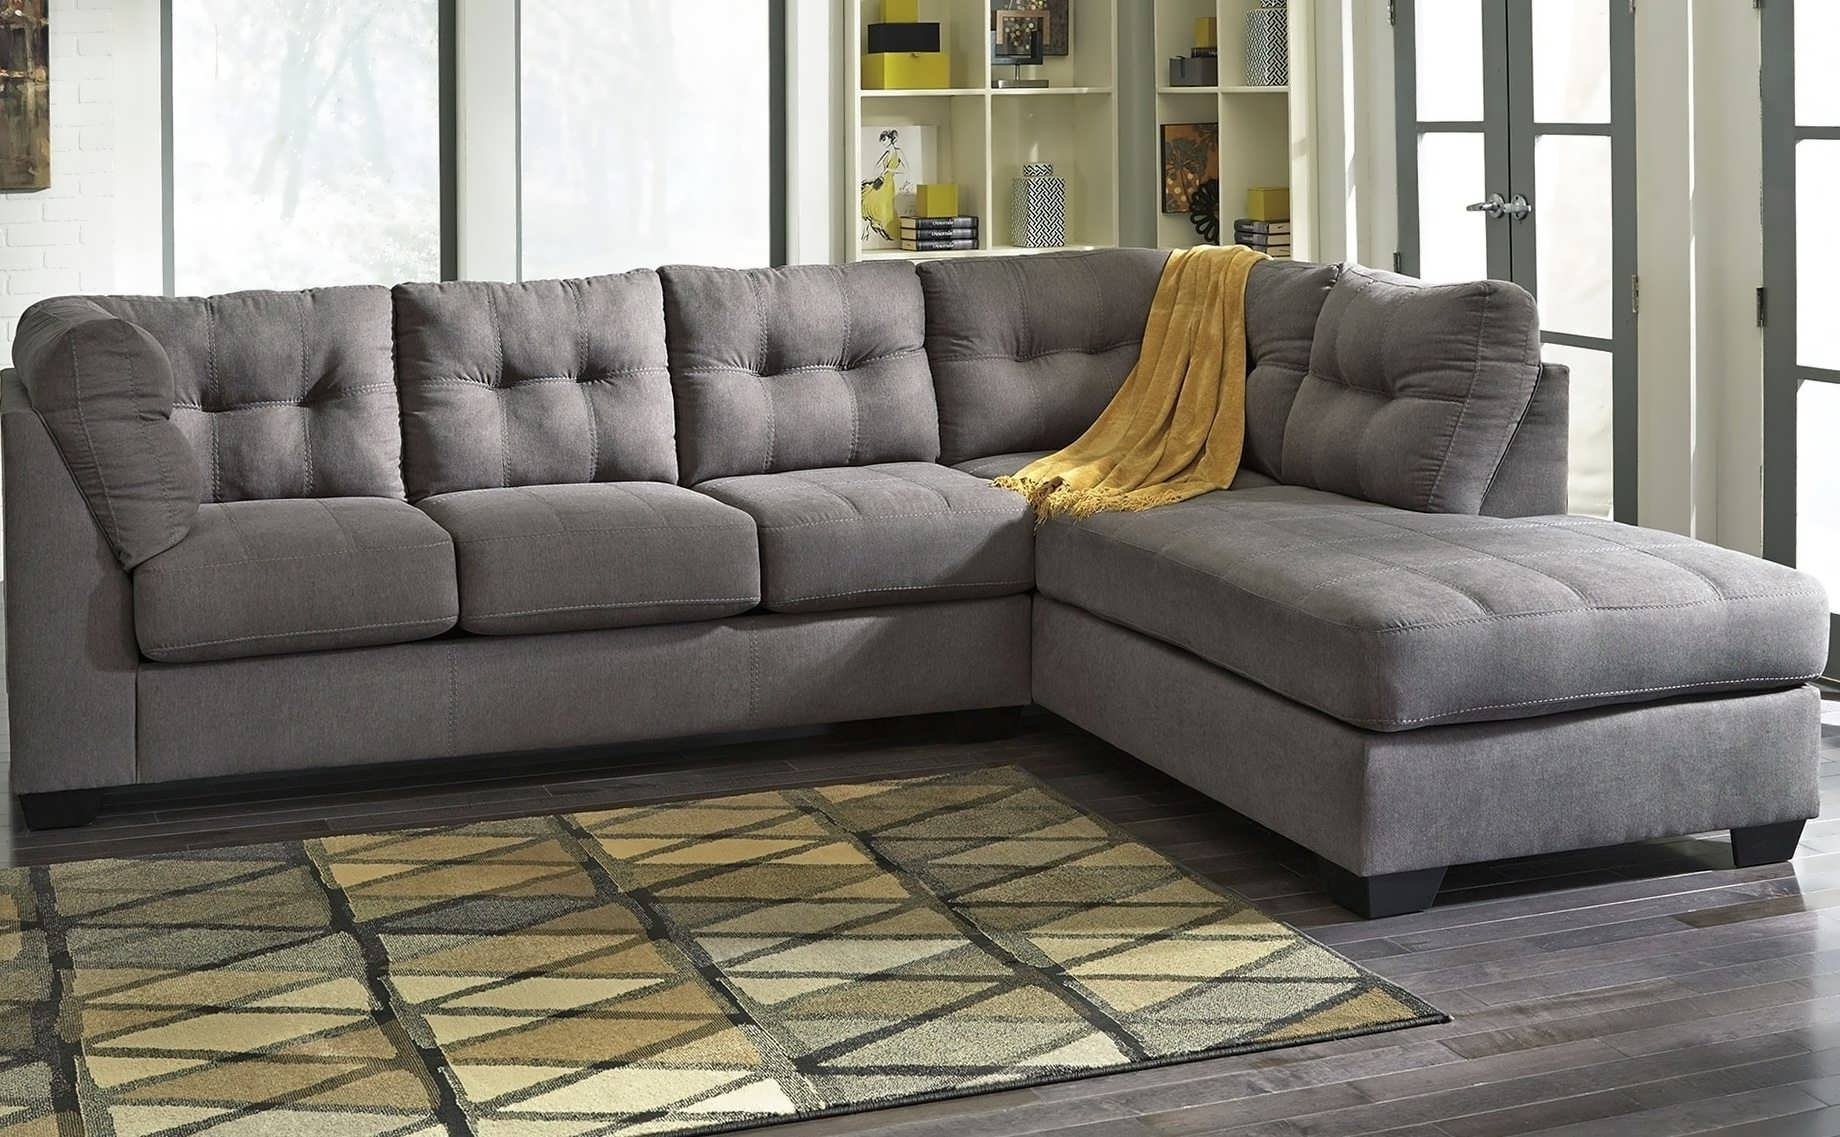 Sofa : Grey Sectional With Chaise Oversized Sectional Sofa White In Current Grey Sectional Sofas With Chaise (View 13 of 15)